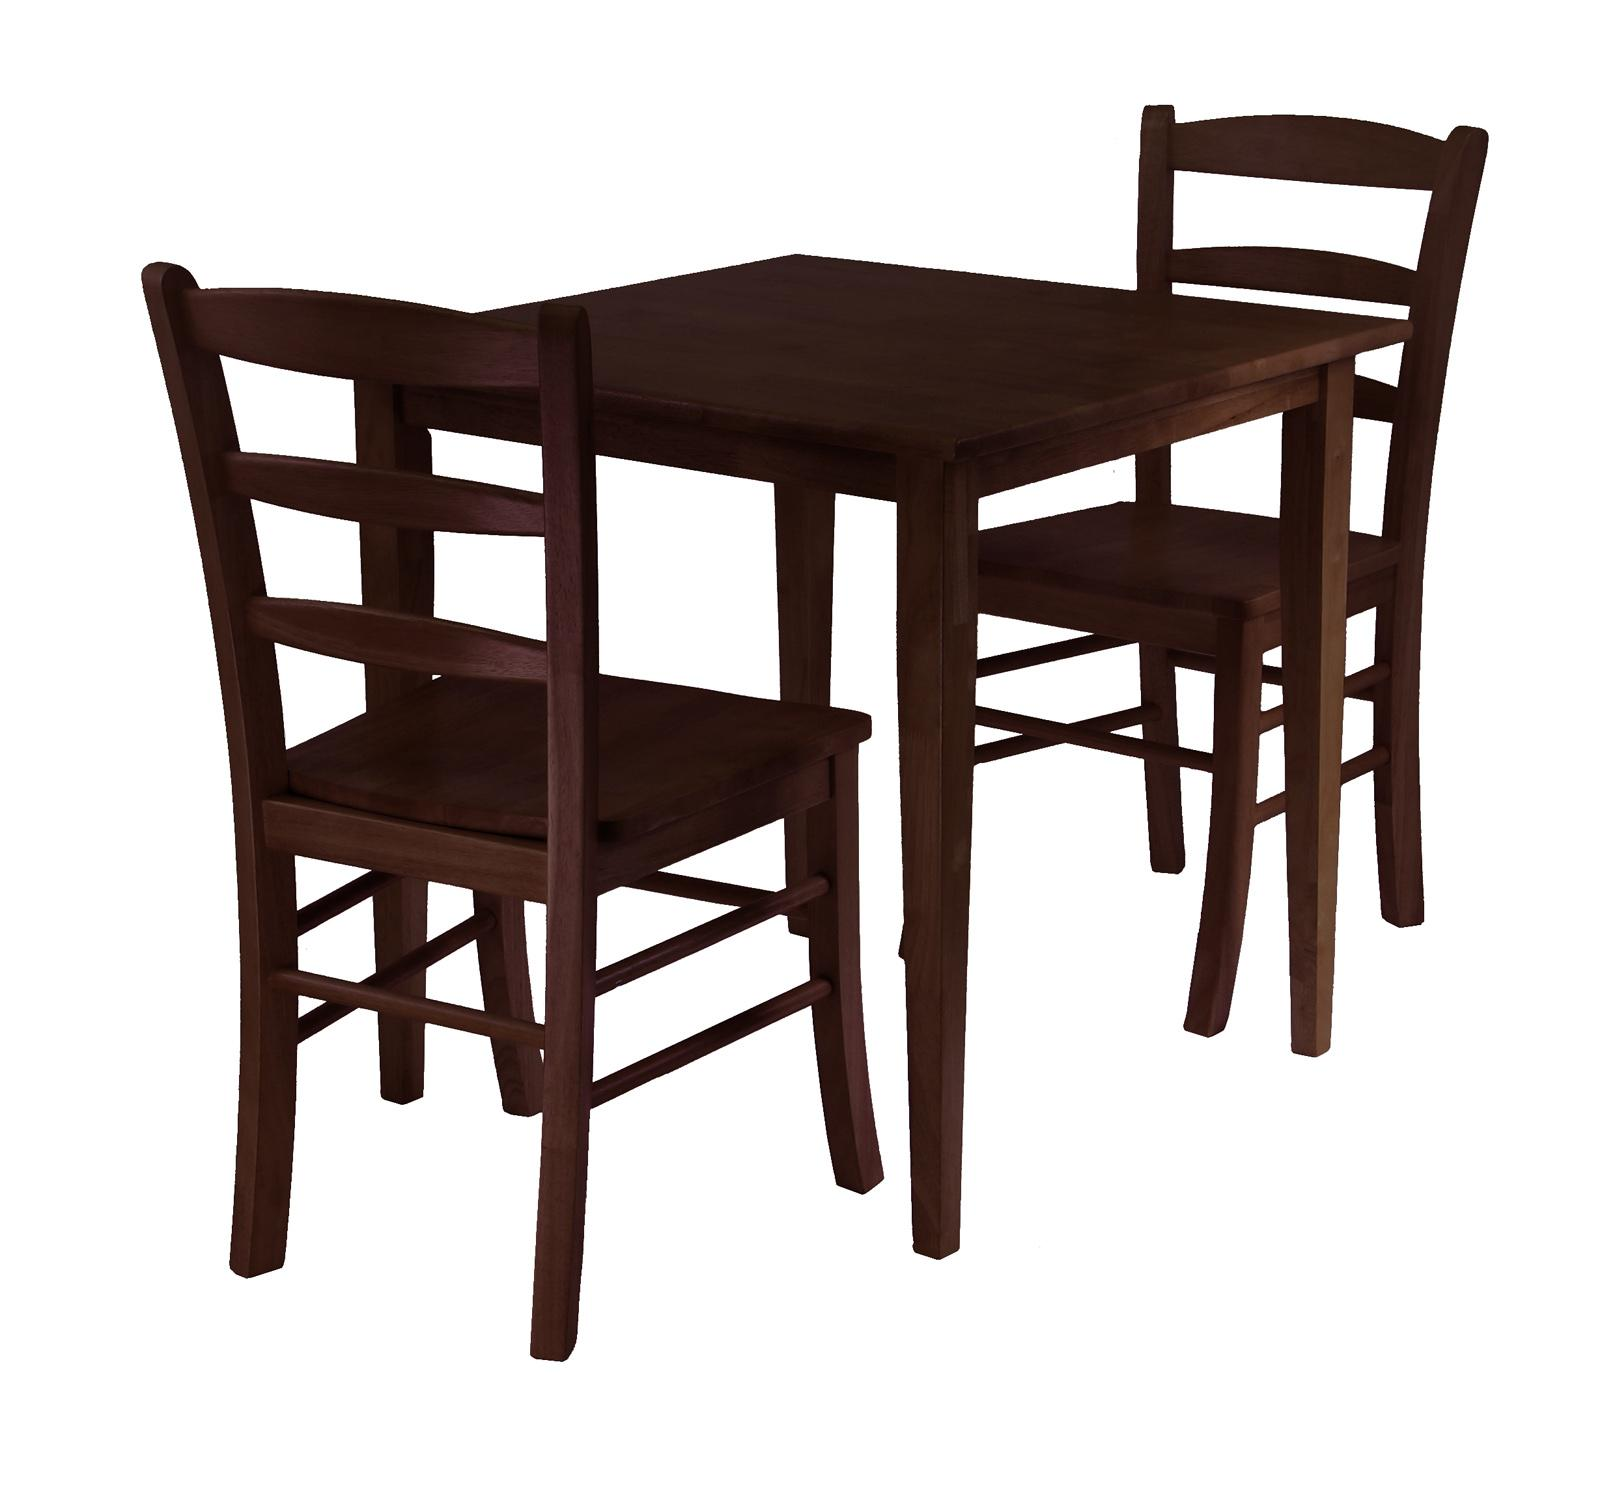 Groveland 3pc square dining table with 2 chairs ojcommerce for Furniture dining table